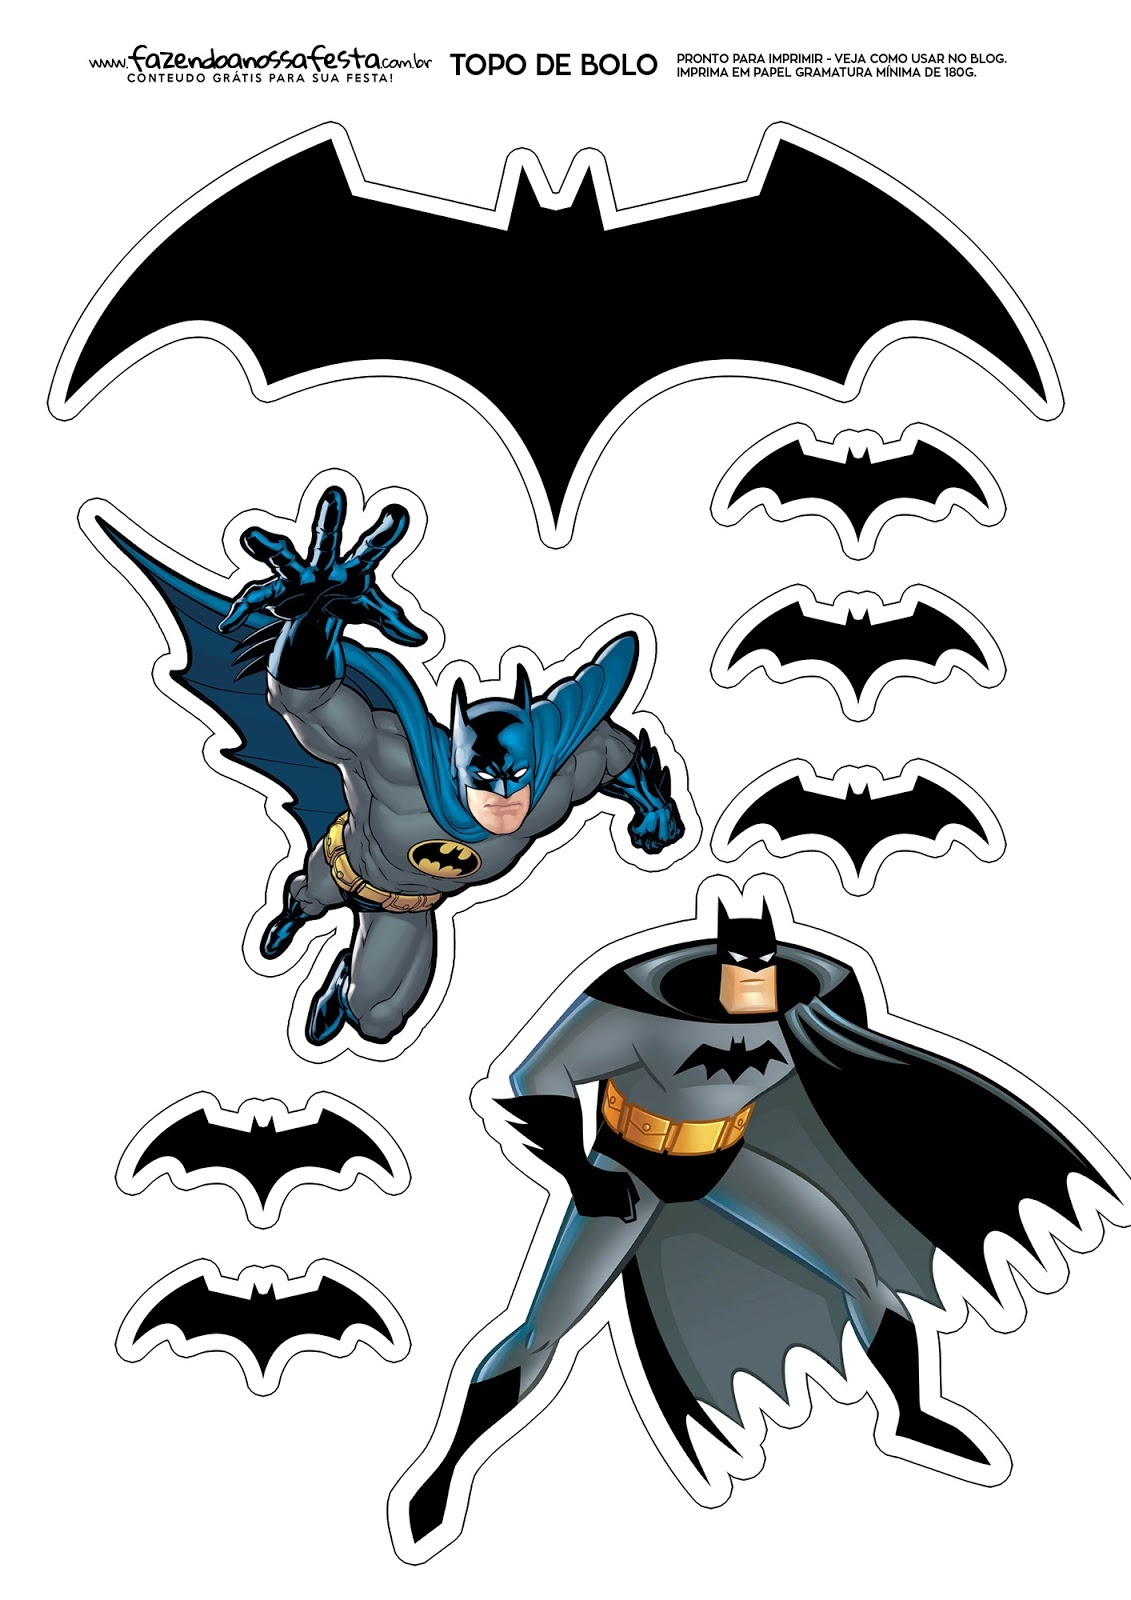 Batman: Free Printable Cake Toppers. - Oh My Fiesta! For Geeks - Batman Cupcake Toppers Free Printable